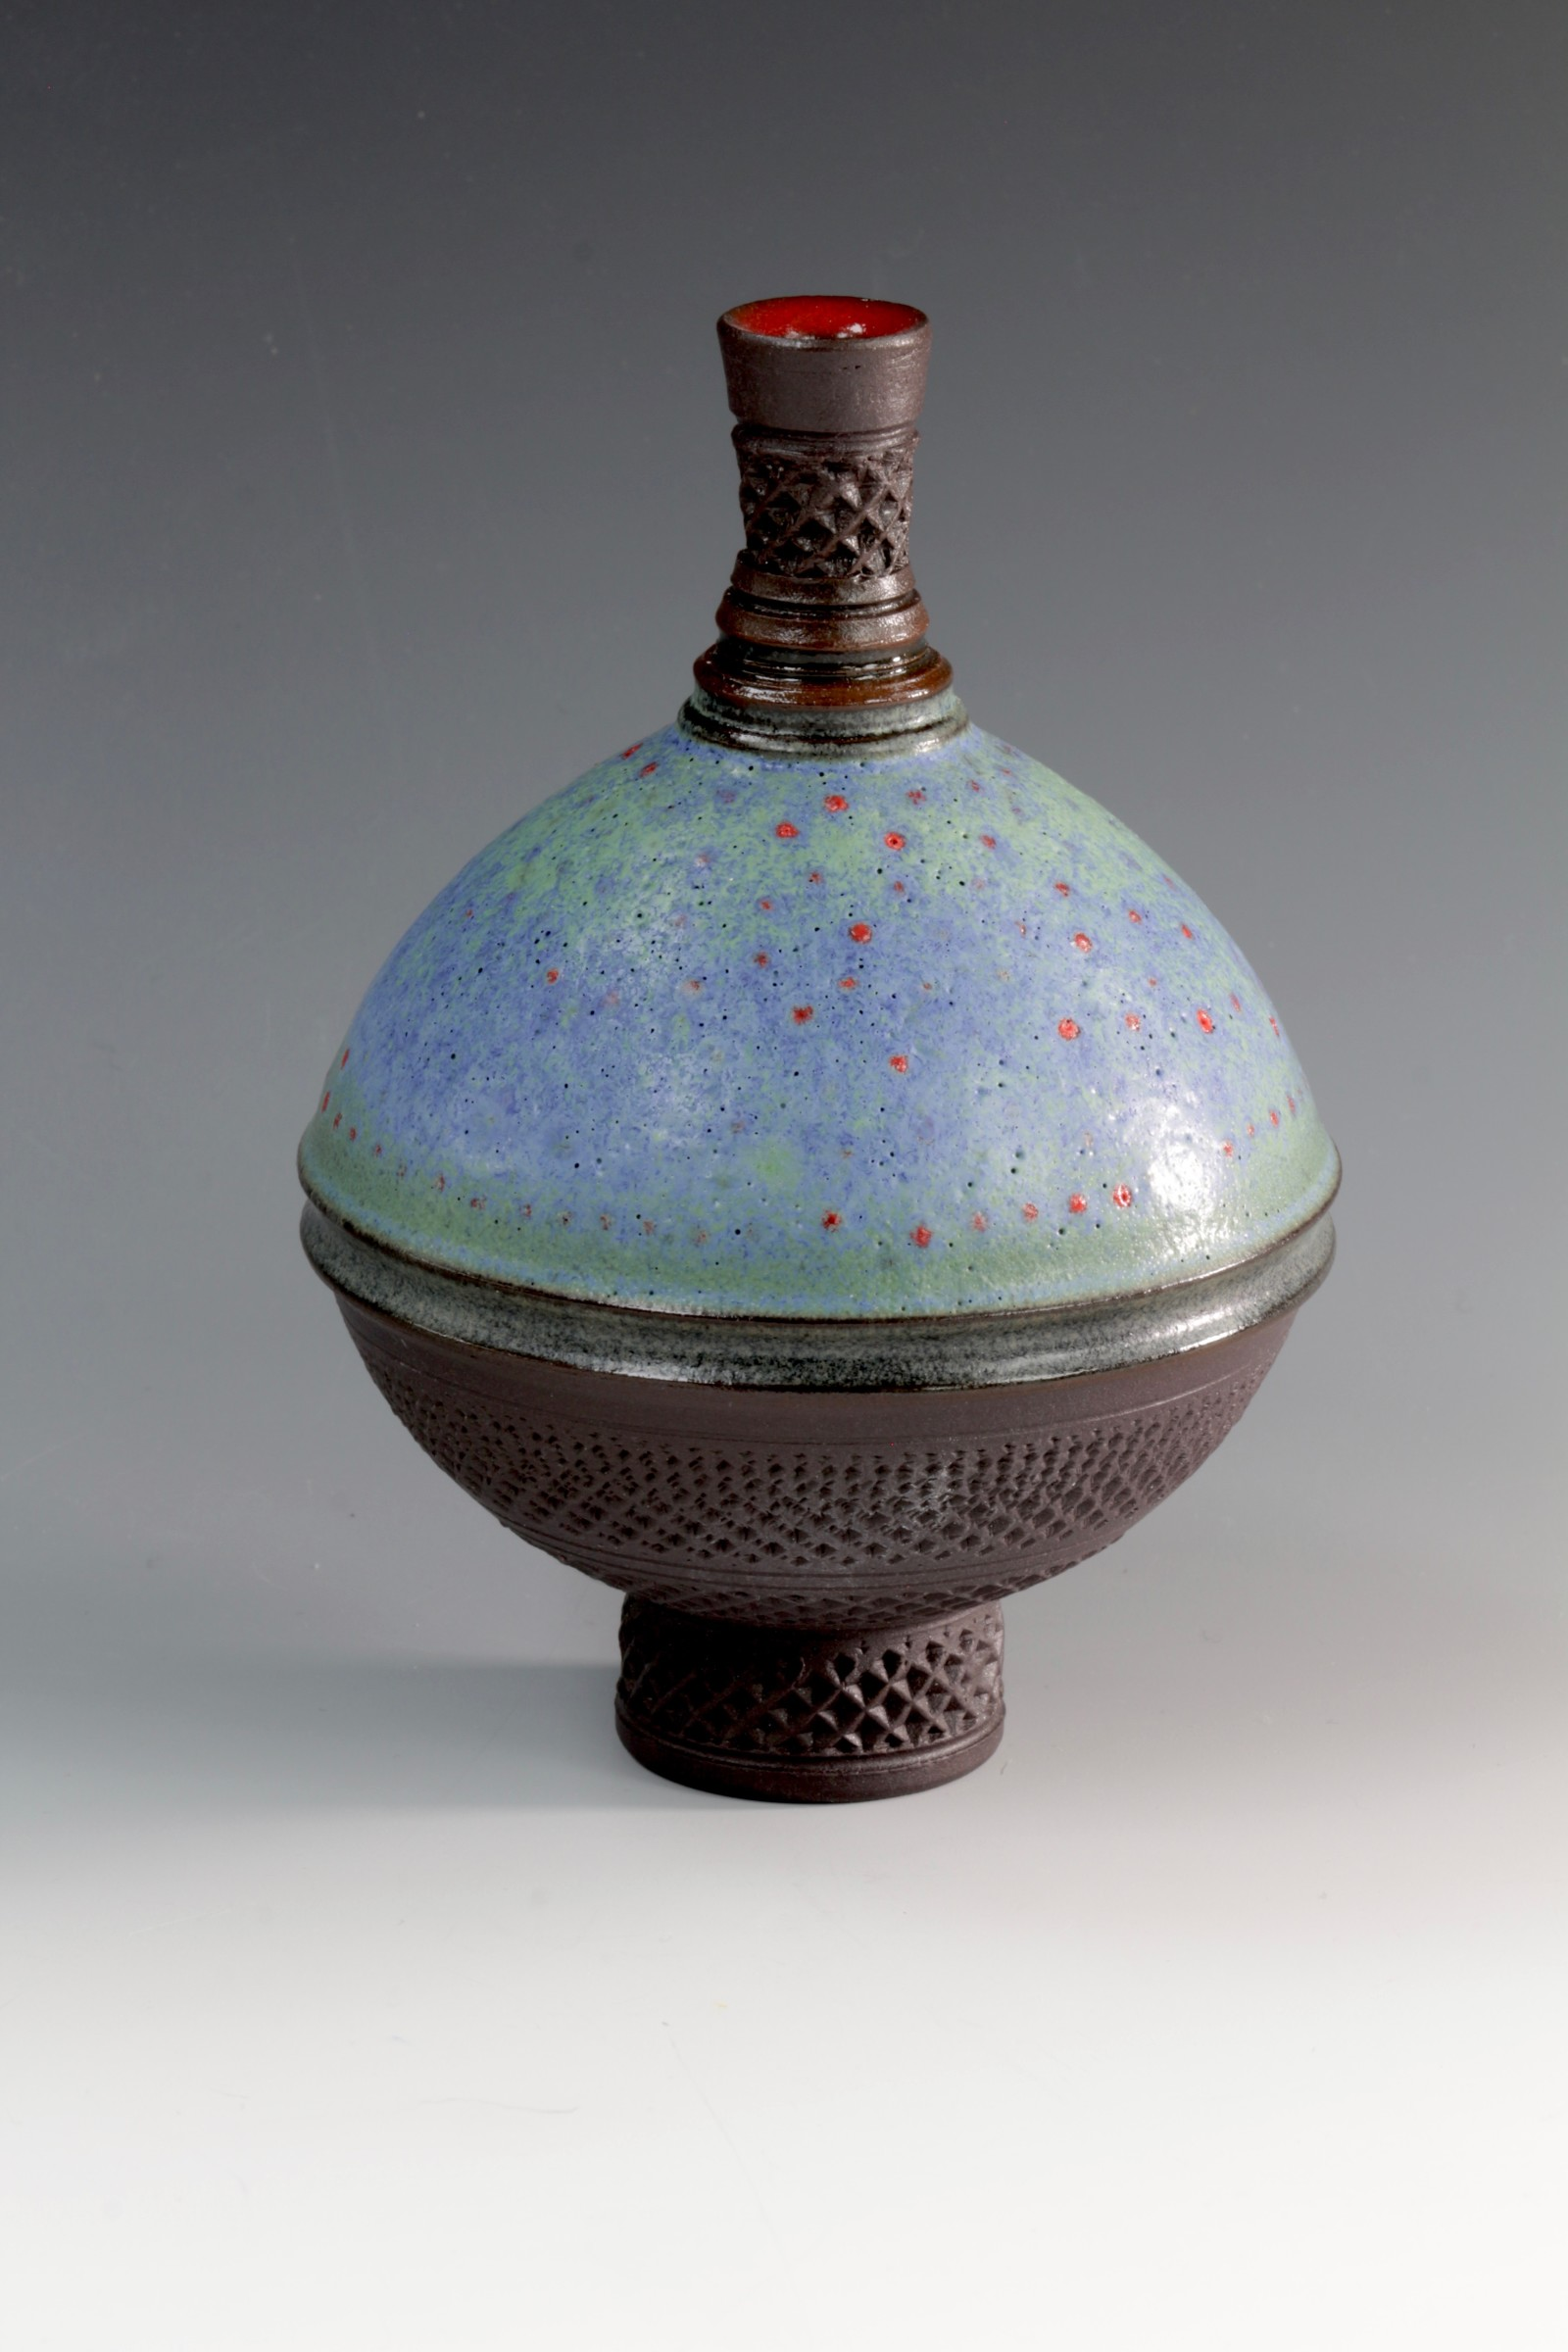 "<span class=""link fancybox-details-link""><a href=""/artists/61-geoffrey-swindell/works/6902-geoffrey-swindell-bud-vase-2020/"">View Detail Page</a></span><div class=""artist""><strong>Geoffrey Swindell</strong></div> <div class=""title""><em>Bud Vase</em>, 2020</div> <div class=""medium"">Porcelain</div><div class=""price"">£170.00</div><div class=""copyright_line"">Copyright The Artist</div>"